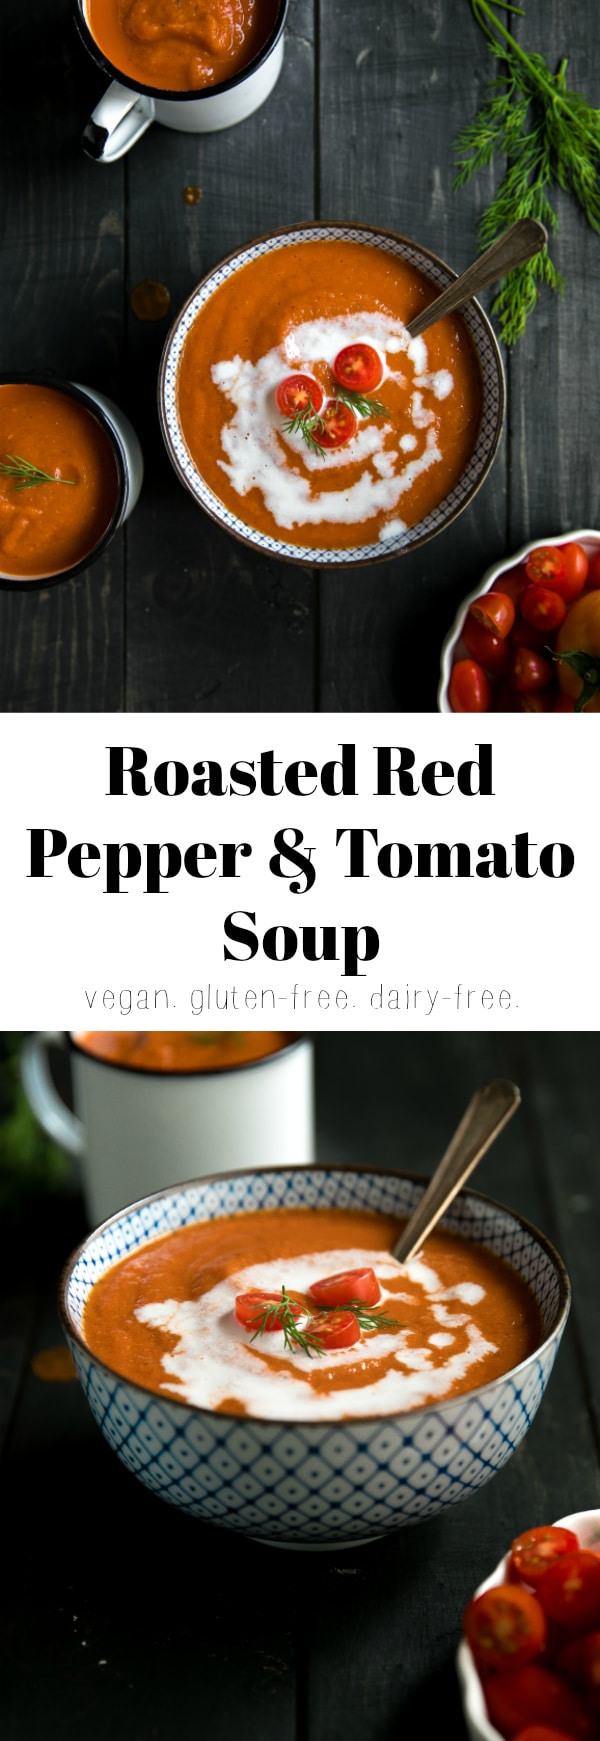 Roasted Red Pepper and Tomato Soup via @theforkedspoon #vegan #glutenfree #dairyfree #healthy #lowcarb #soup #easyrecipe